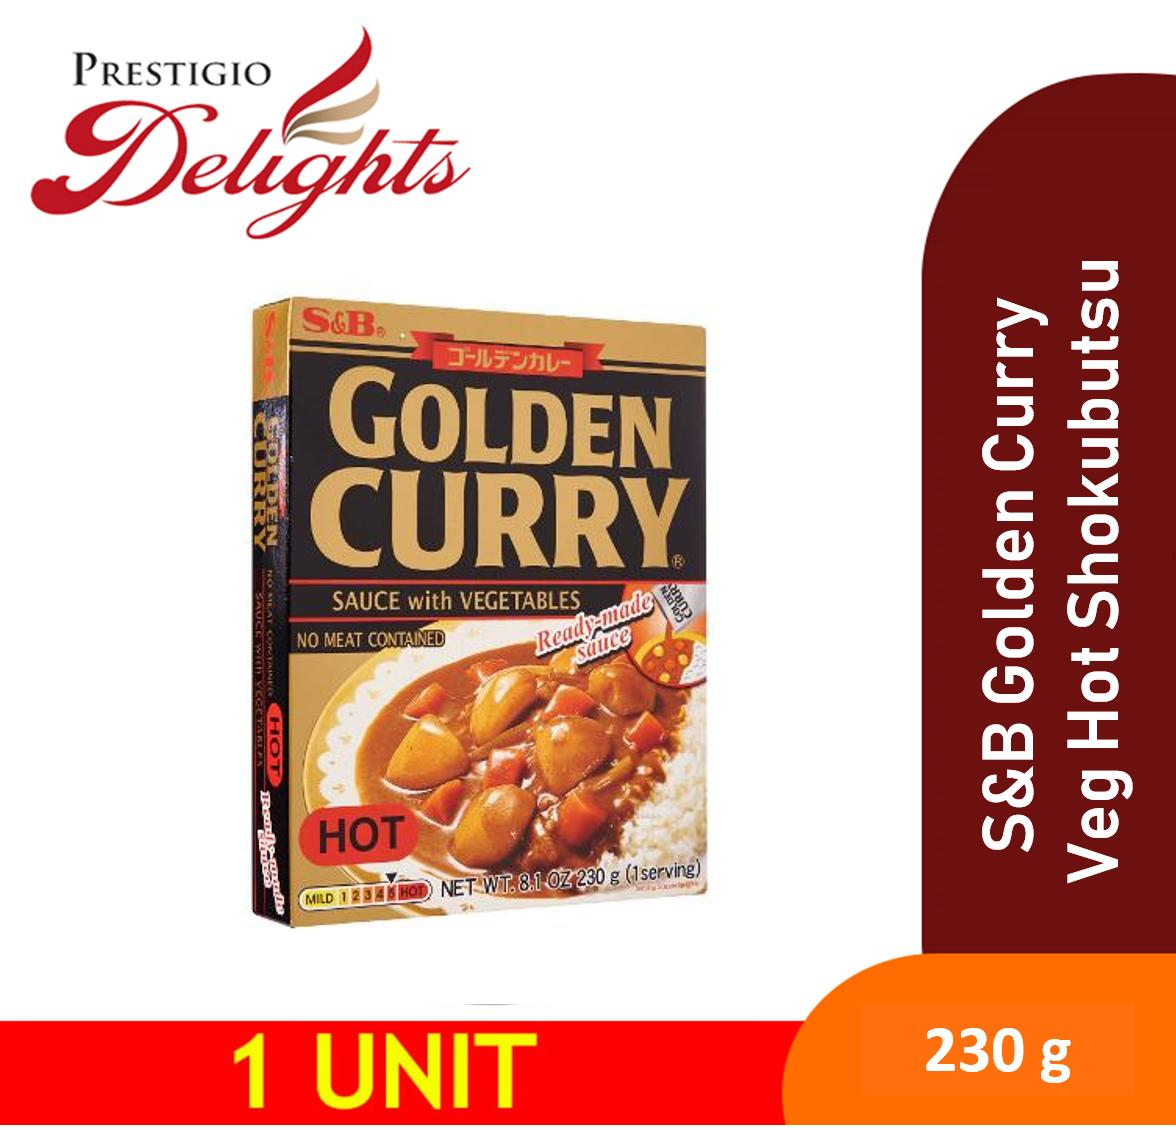 S&b Golden Curry With Vegetables Hot Shokubutsu 230g By Prestigio Delights.